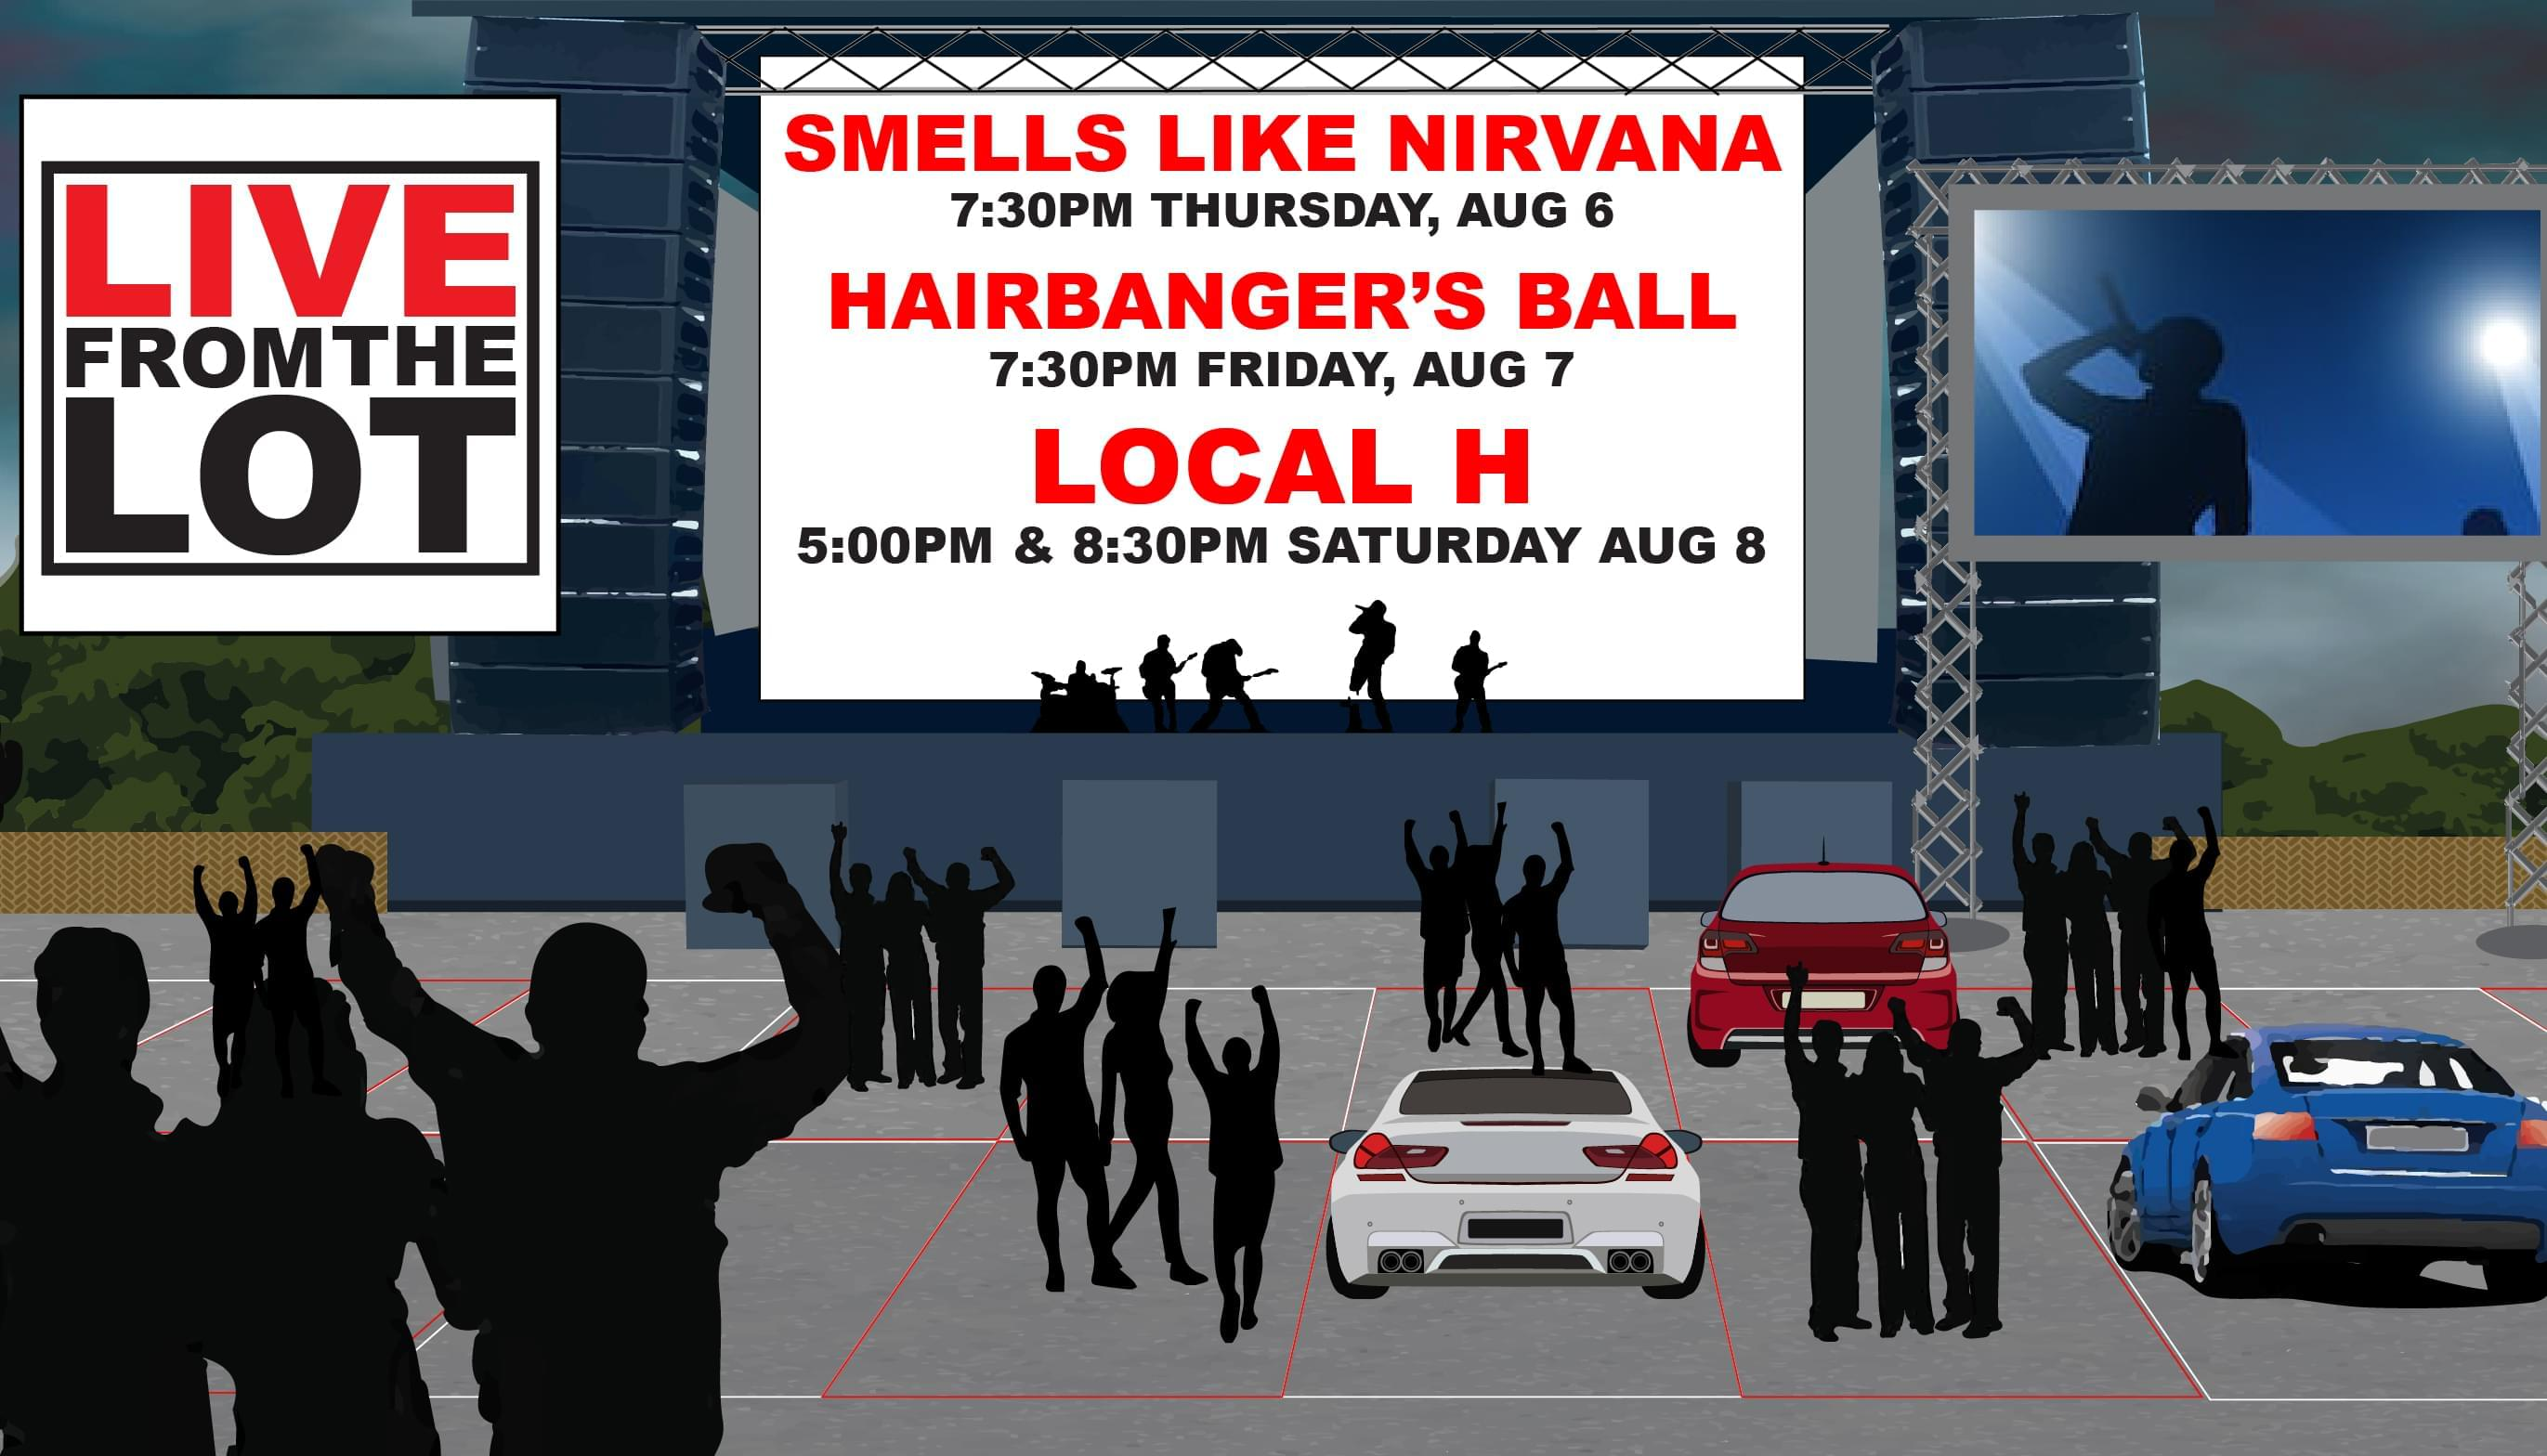 8/6/20 – LIVE FROM THE LOT featuring Smells Like Nirvana